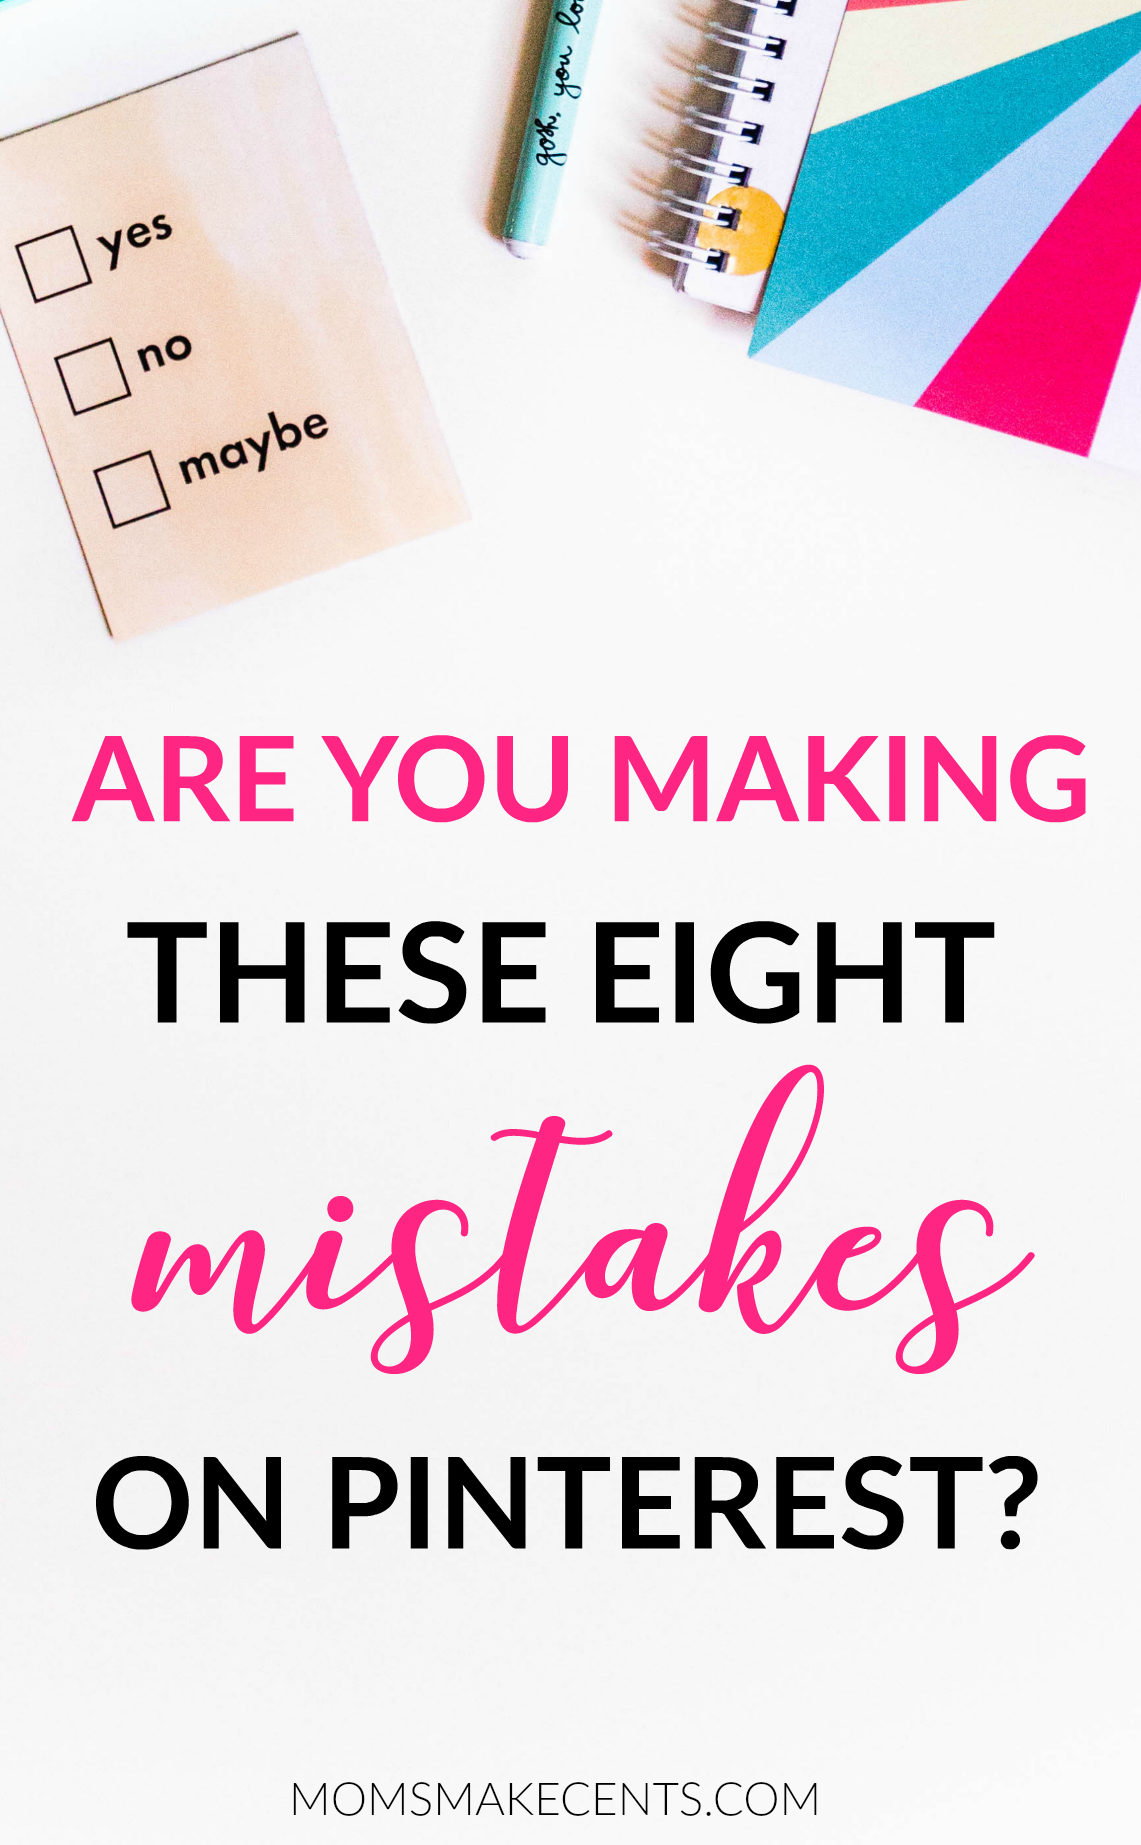 Are You Making These Pinterest Mistakes?